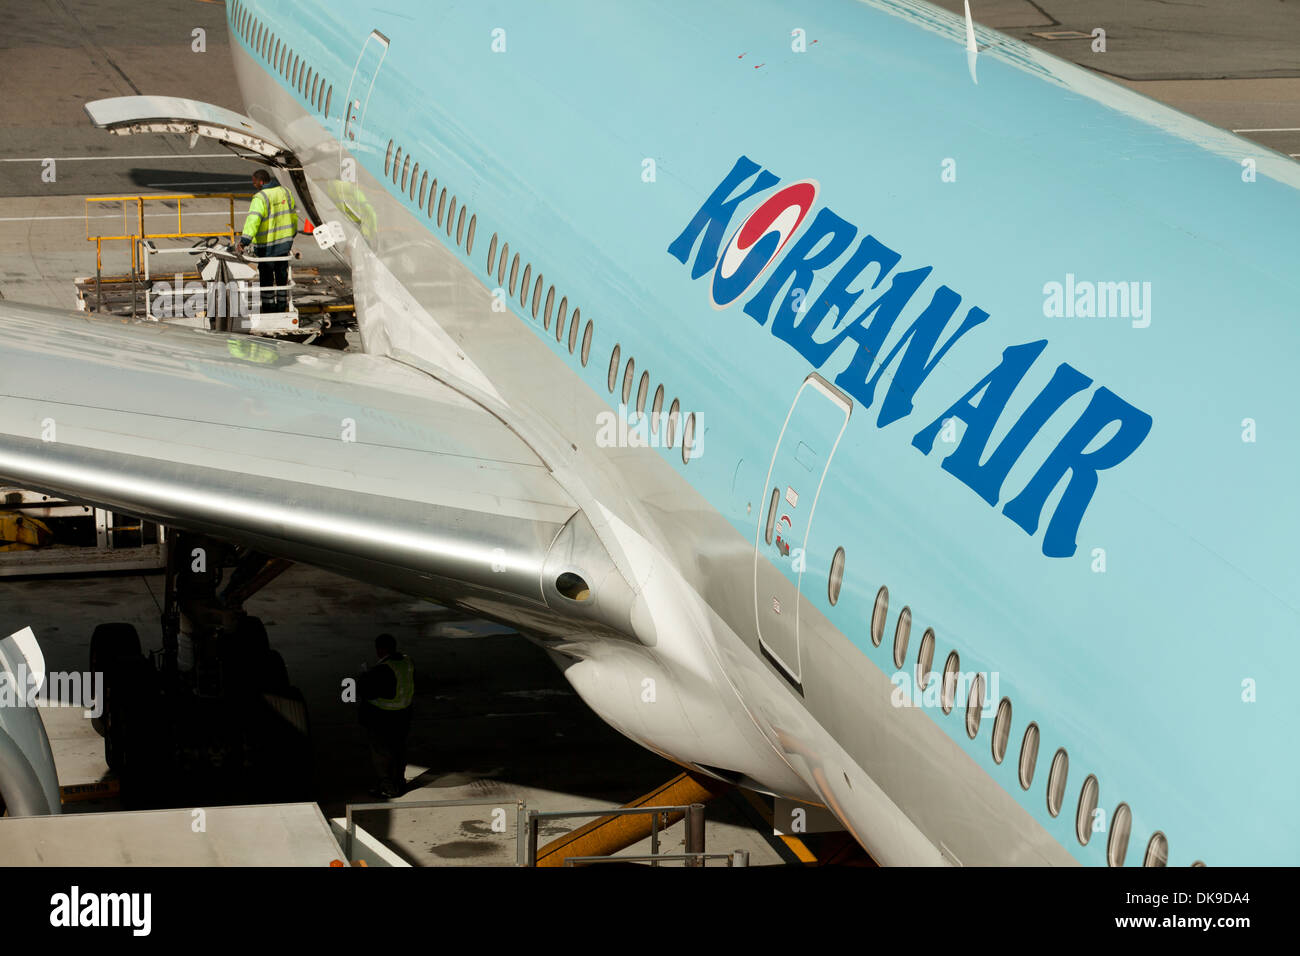 Korean Air Boeing 777-200 plane - San Francisco International Airport - California USA - Stock Image